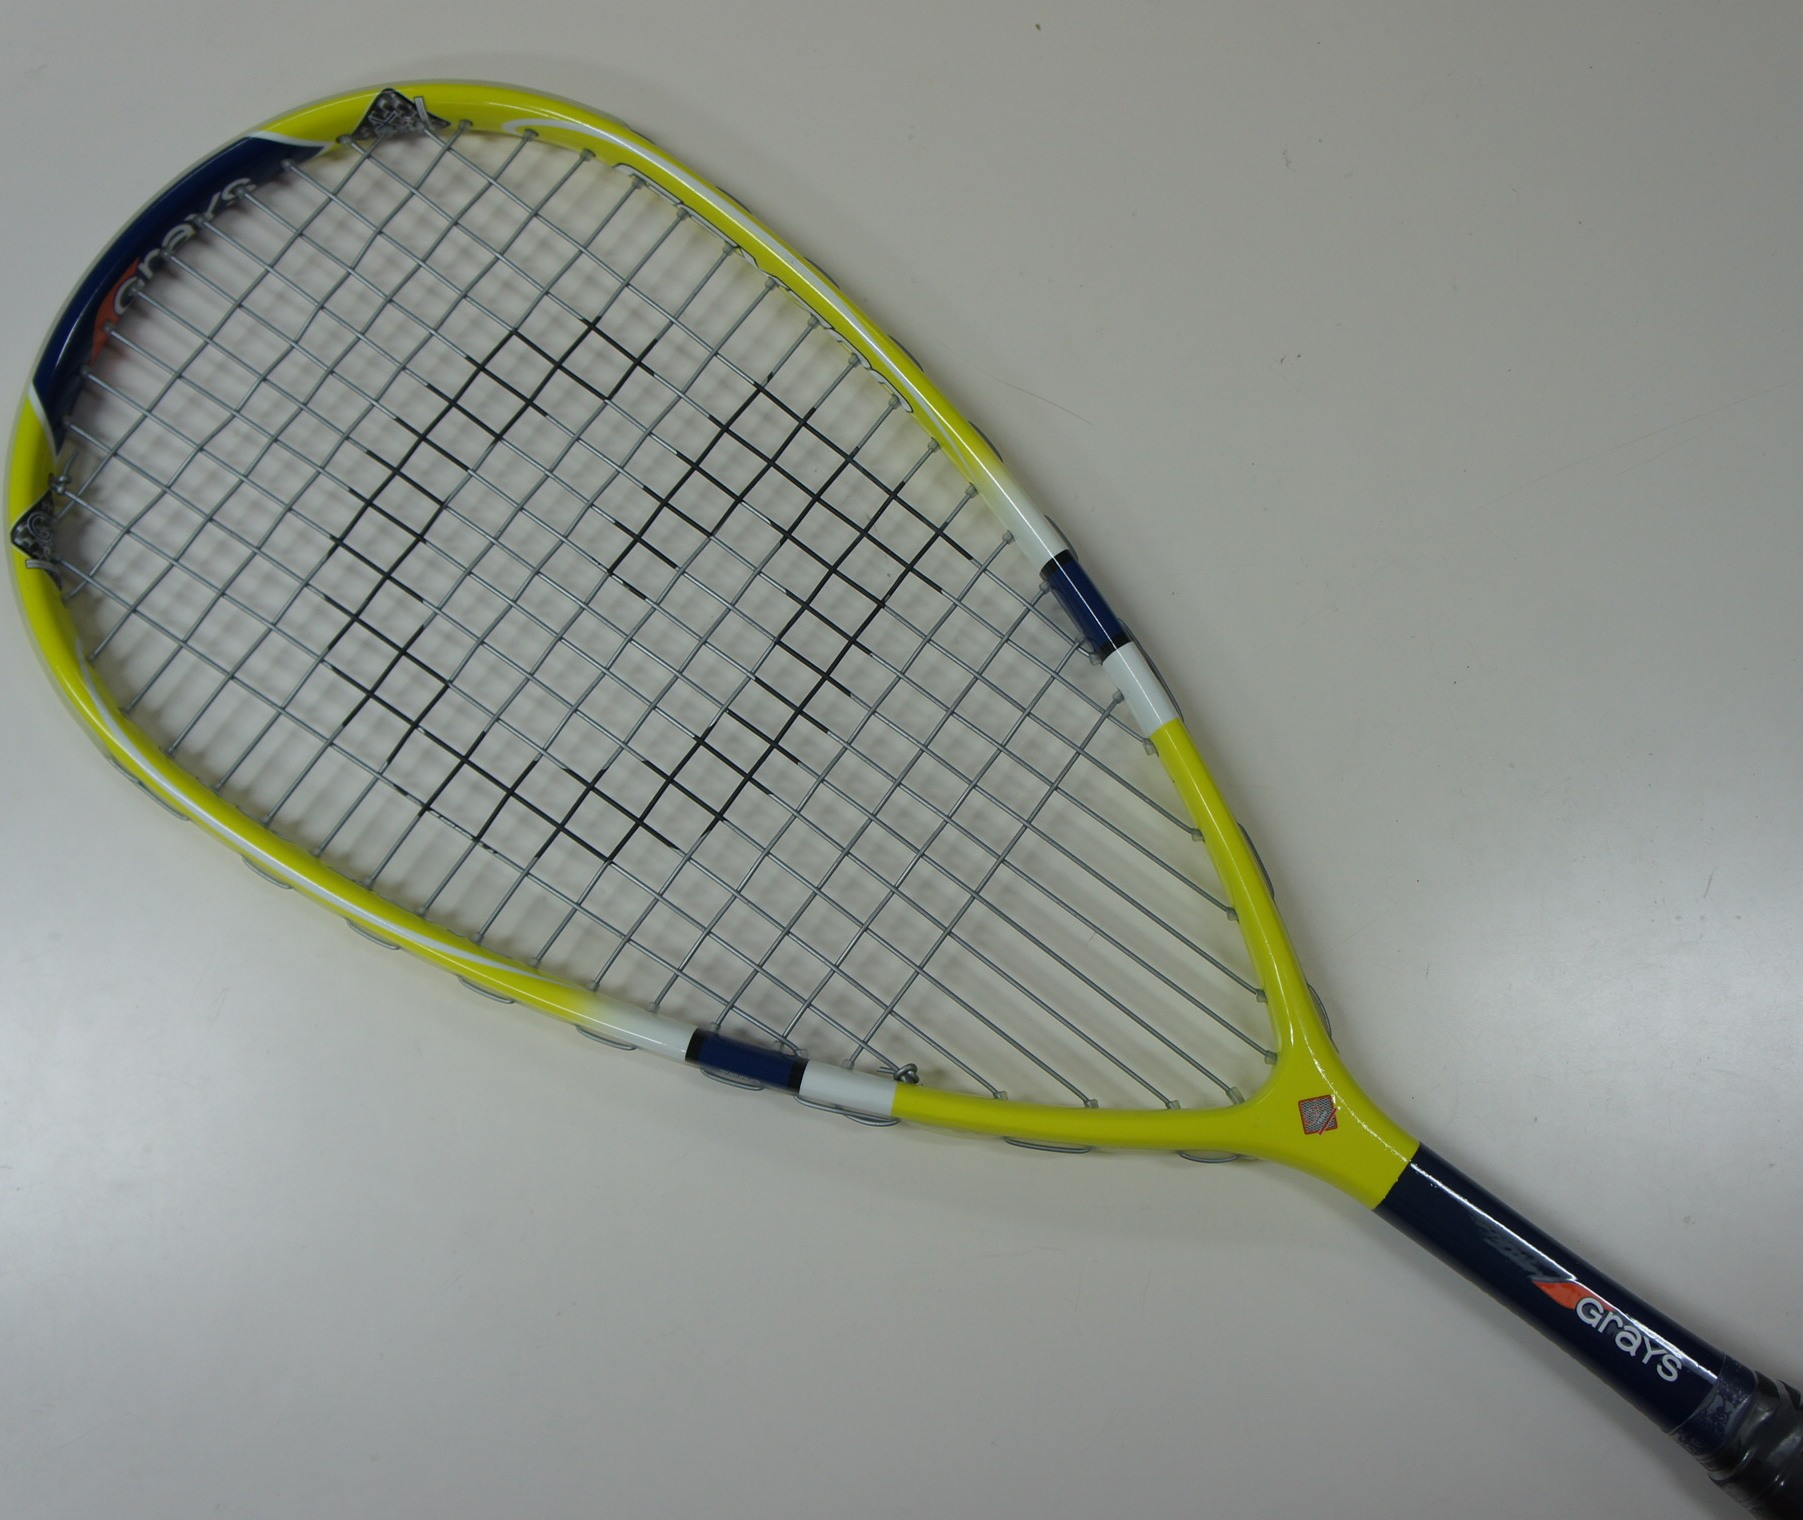 GRAYS High Quality Full Graphite Squash Racquet GSX 700 (190 grams), Strung